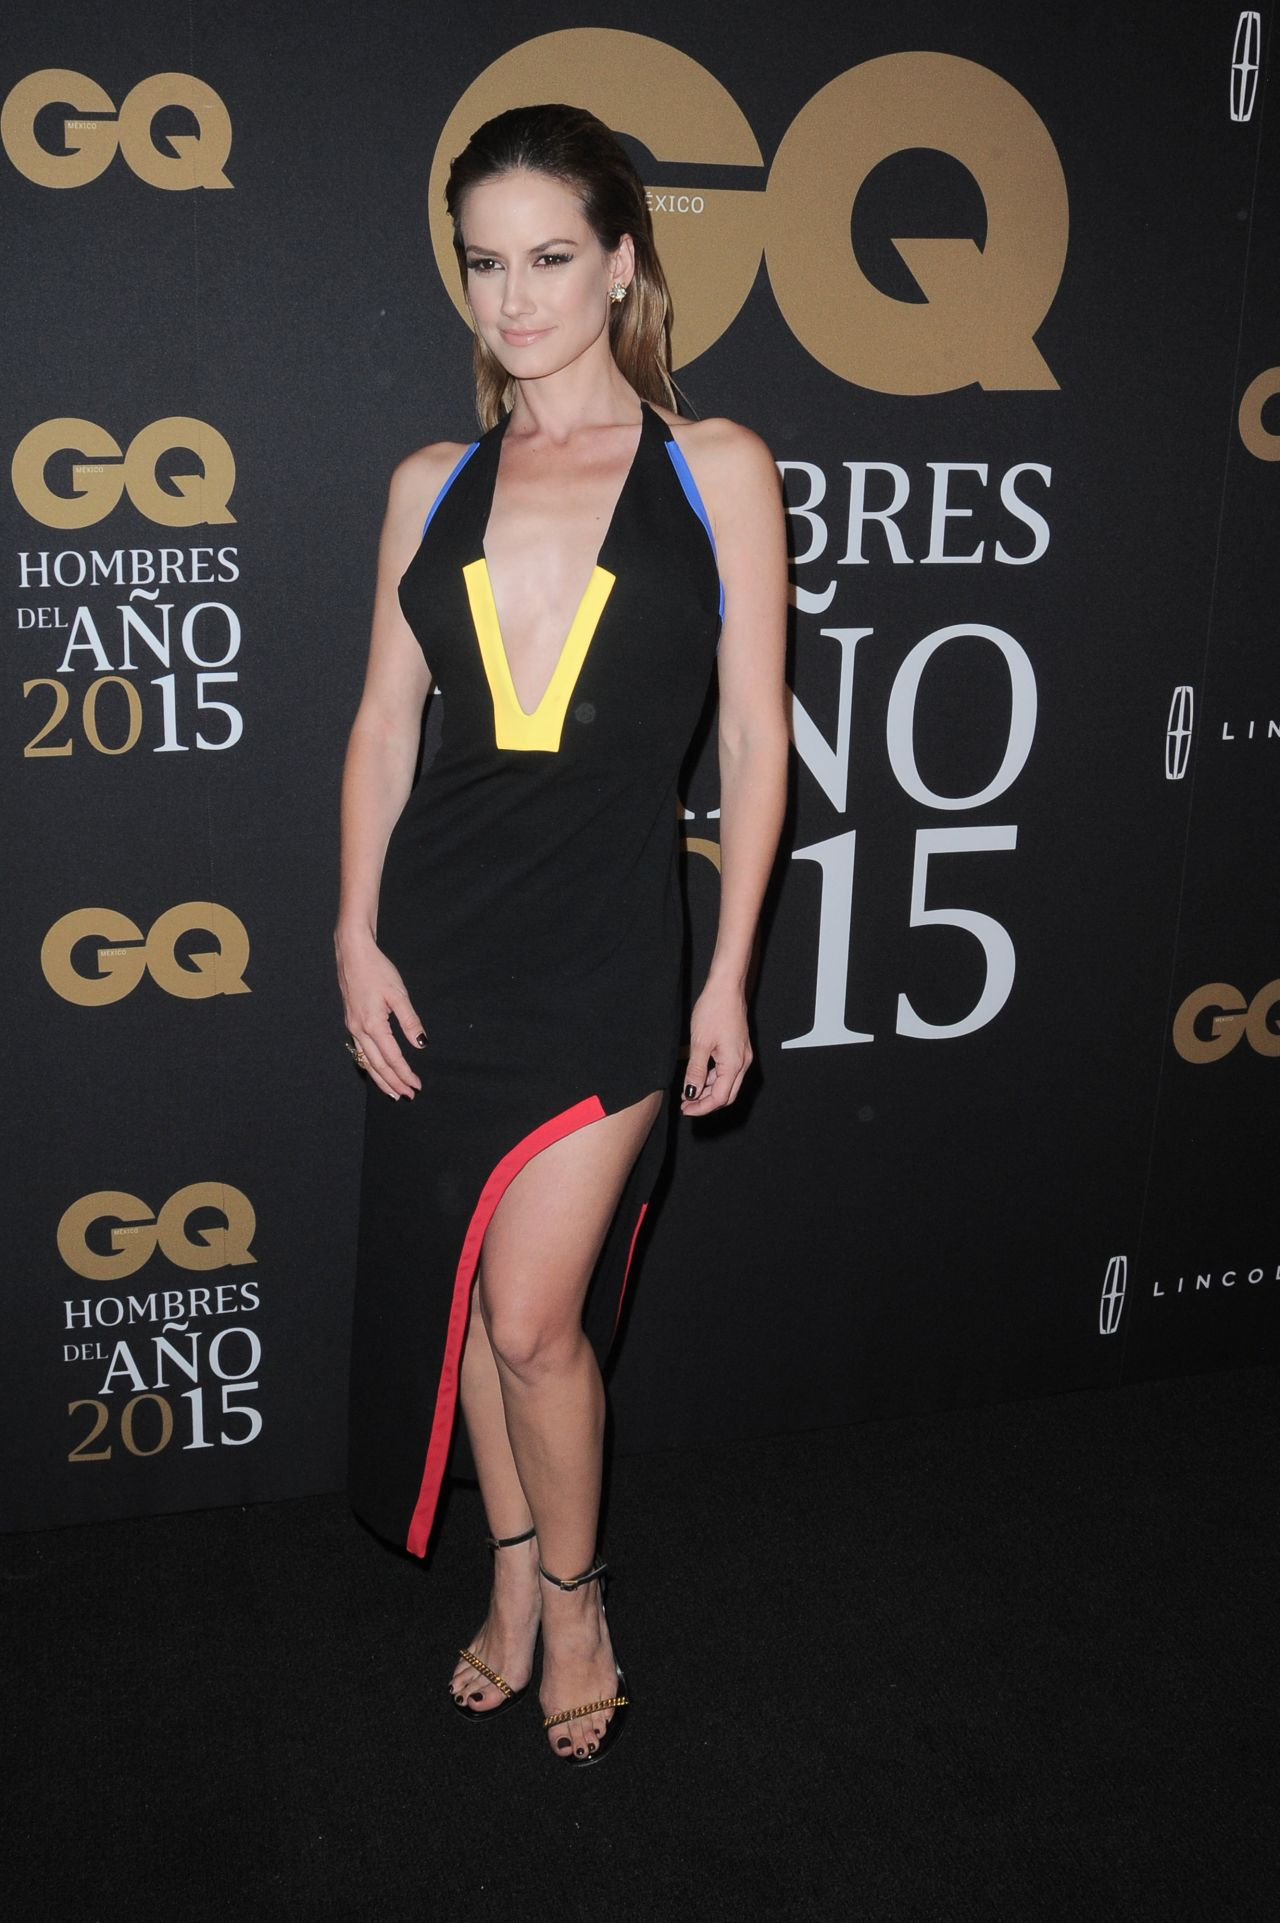 Altair Jarabo Gq Men Of The Year Awards 2015 In Mexico City